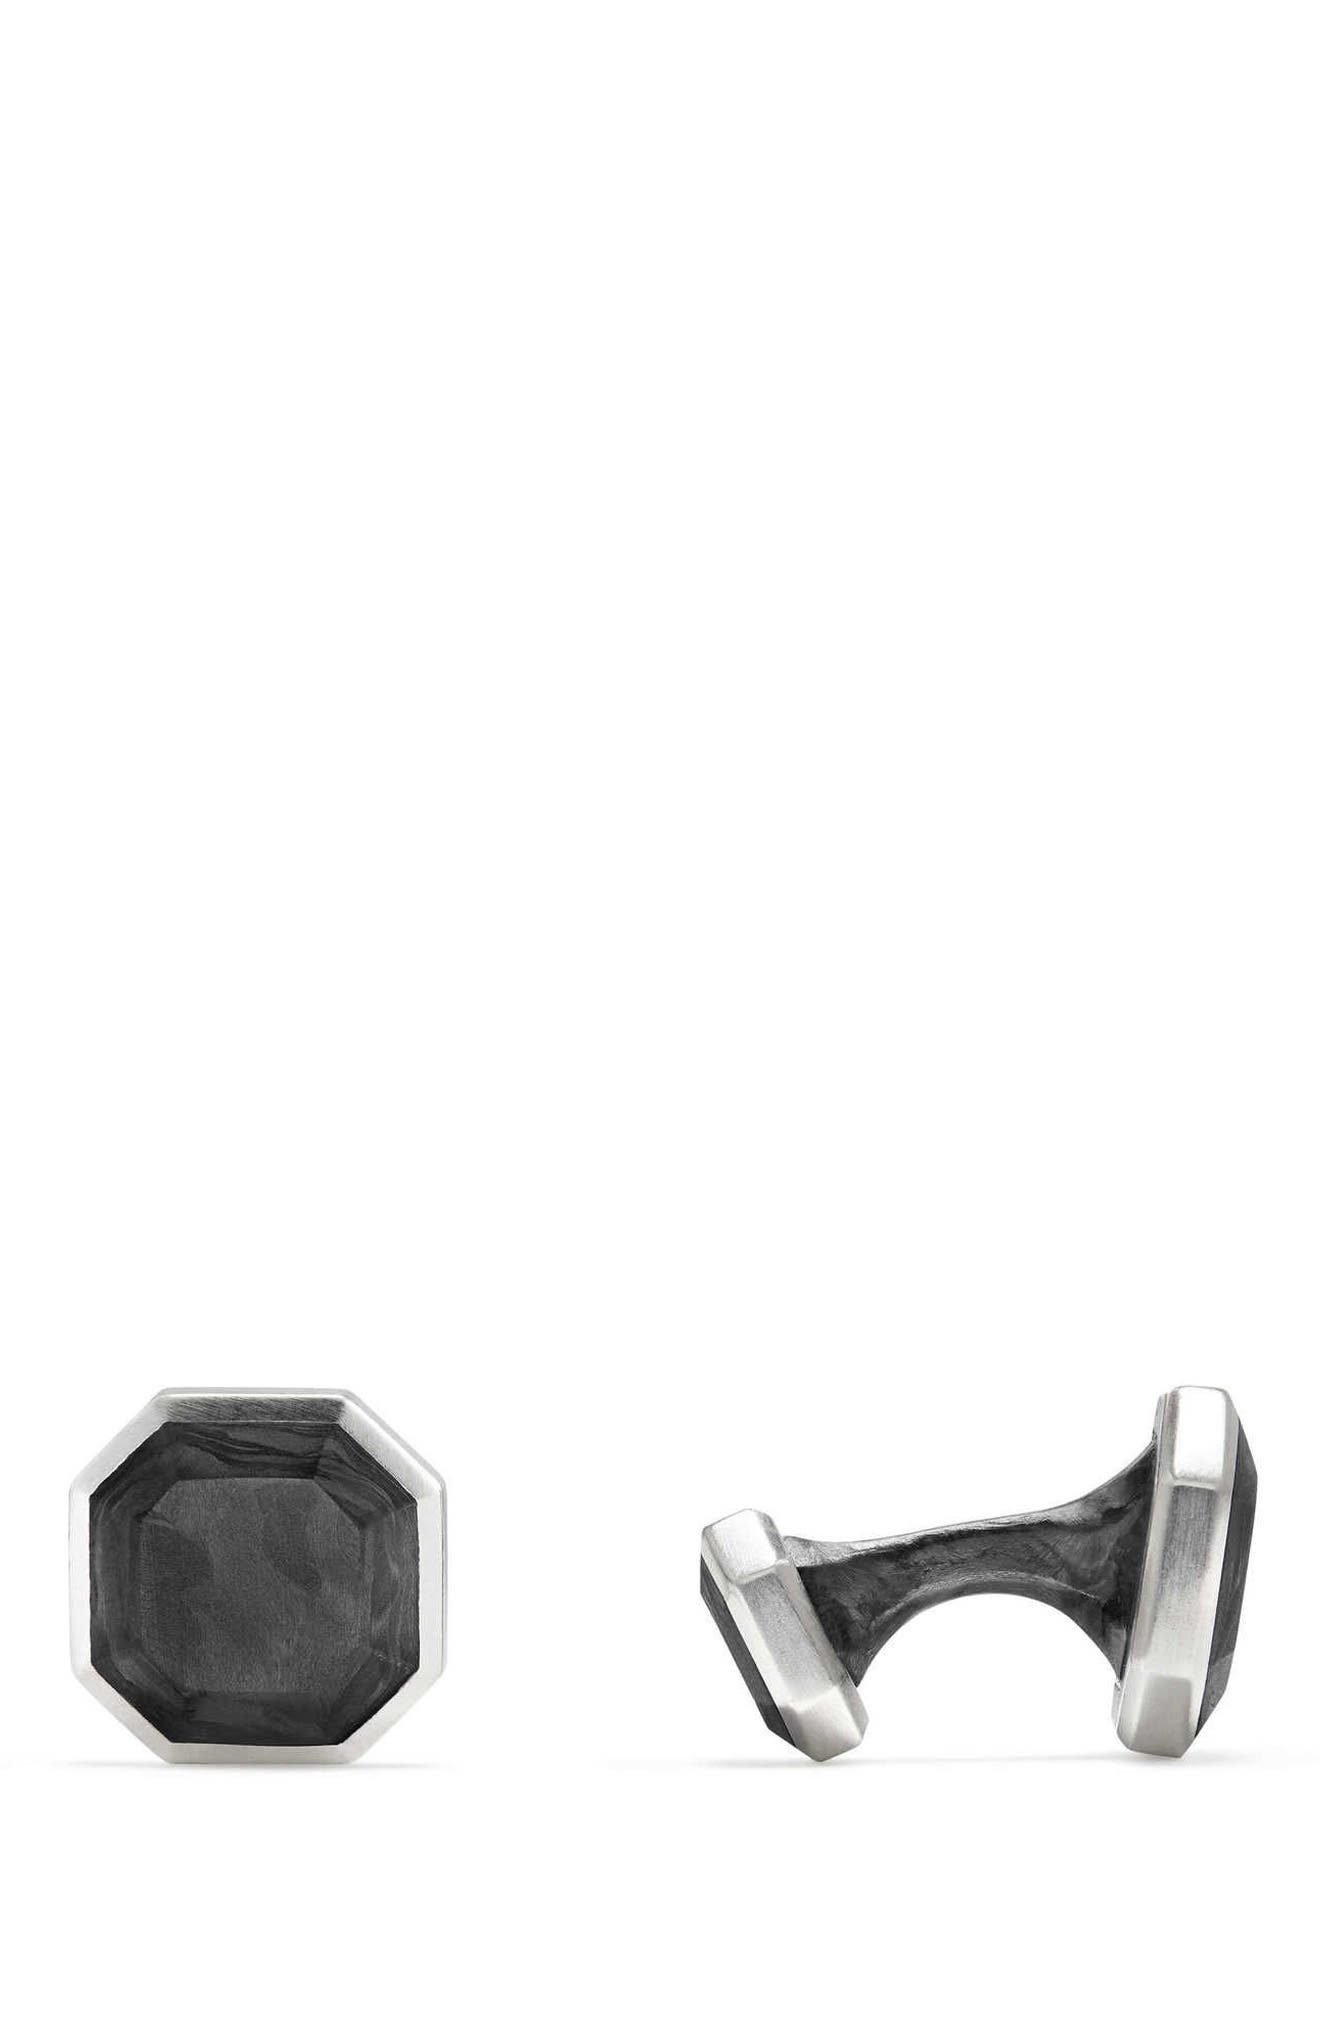 Forged Carbon Cuff Links,                             Alternate thumbnail 2, color,                             Forged Carbon